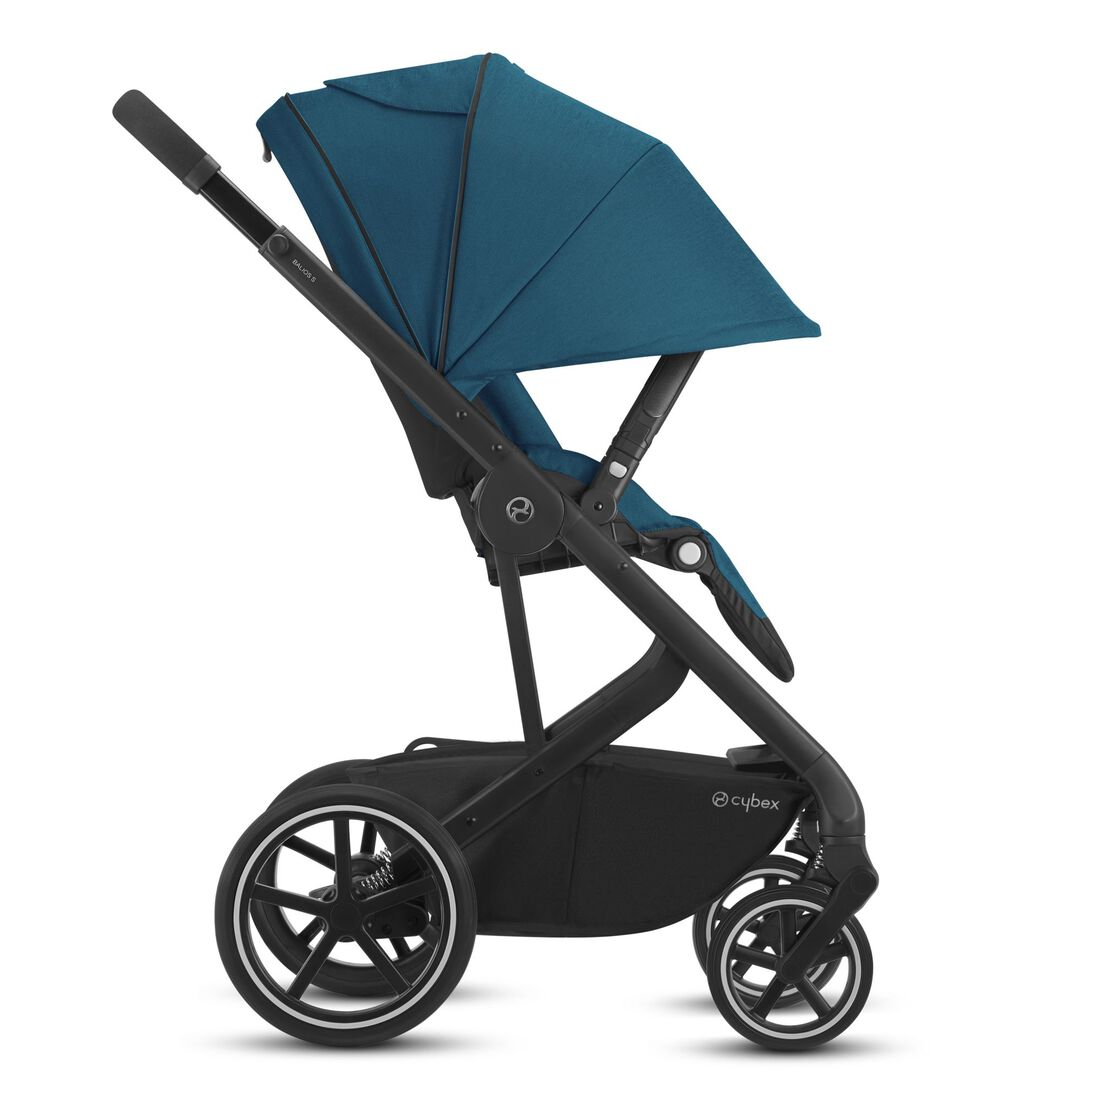 CYBEX Balios S Lux - River Blue (Black Frame) in River Blue (Black Frame) large image number 5